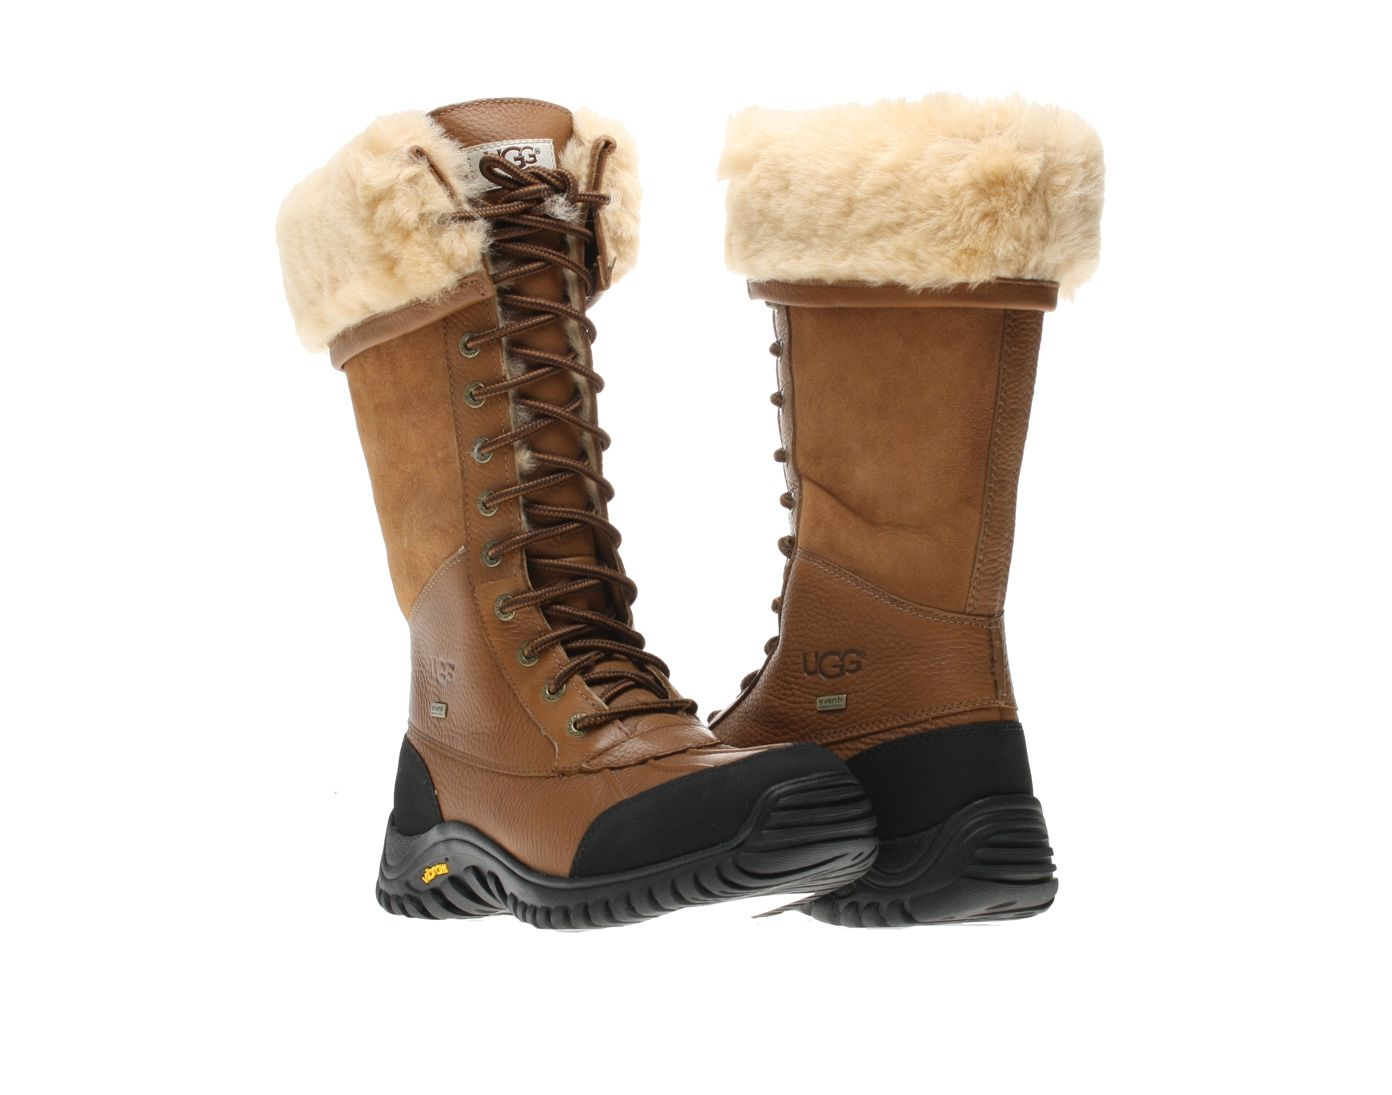 UGG Australia Adirondack Tall Womens Winter Boots | Fashion ...